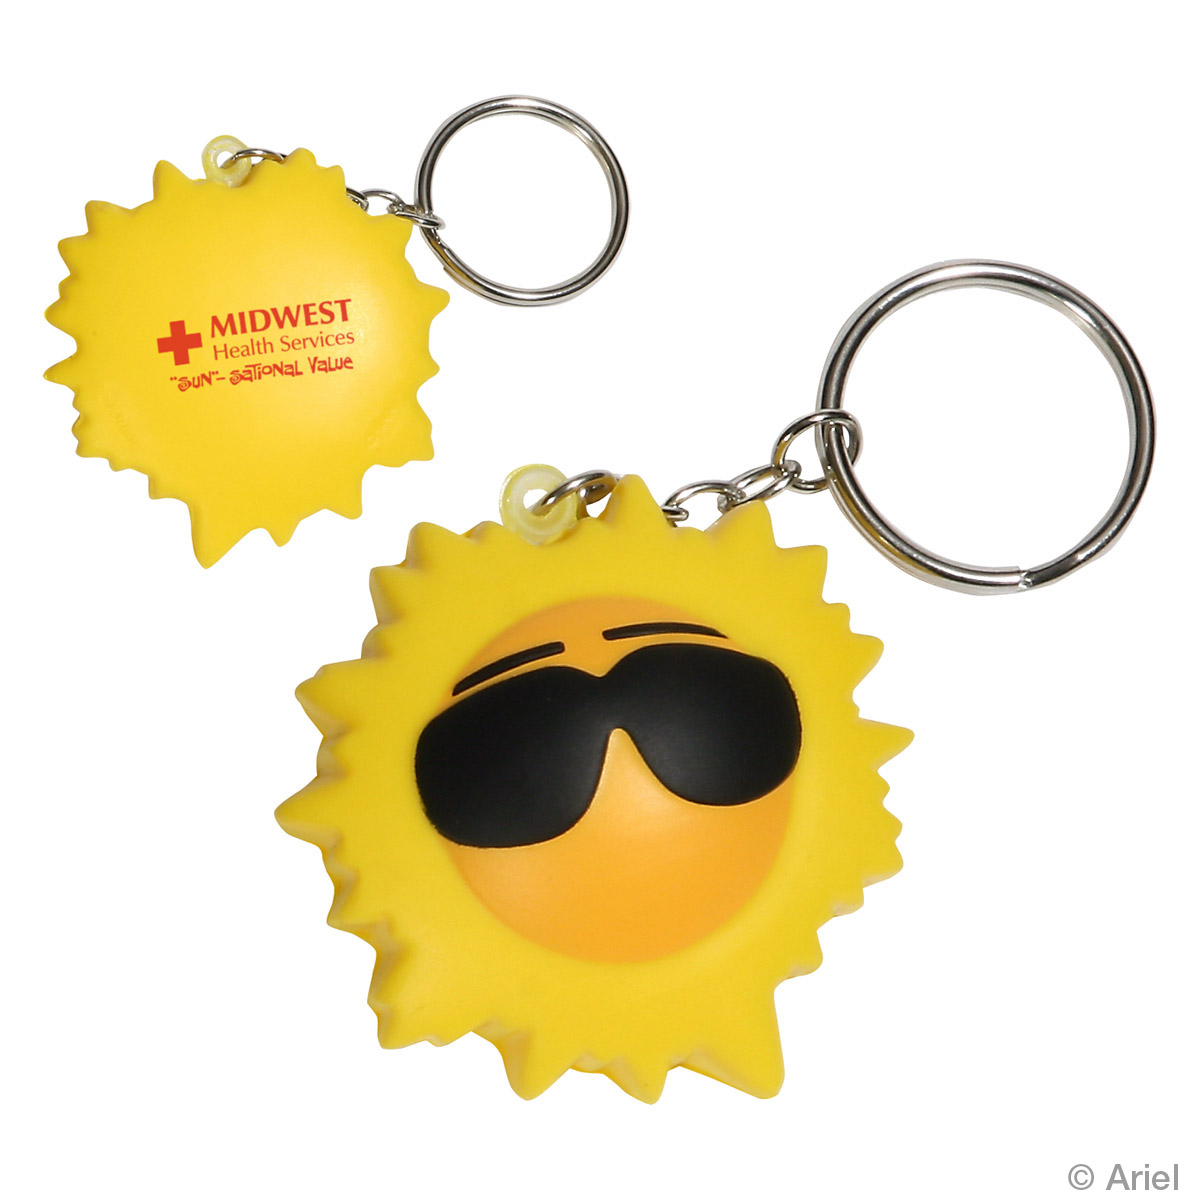 Cool Sun Stress Reliever Key Chain, LKC-CS11, 1 Colour Imprint